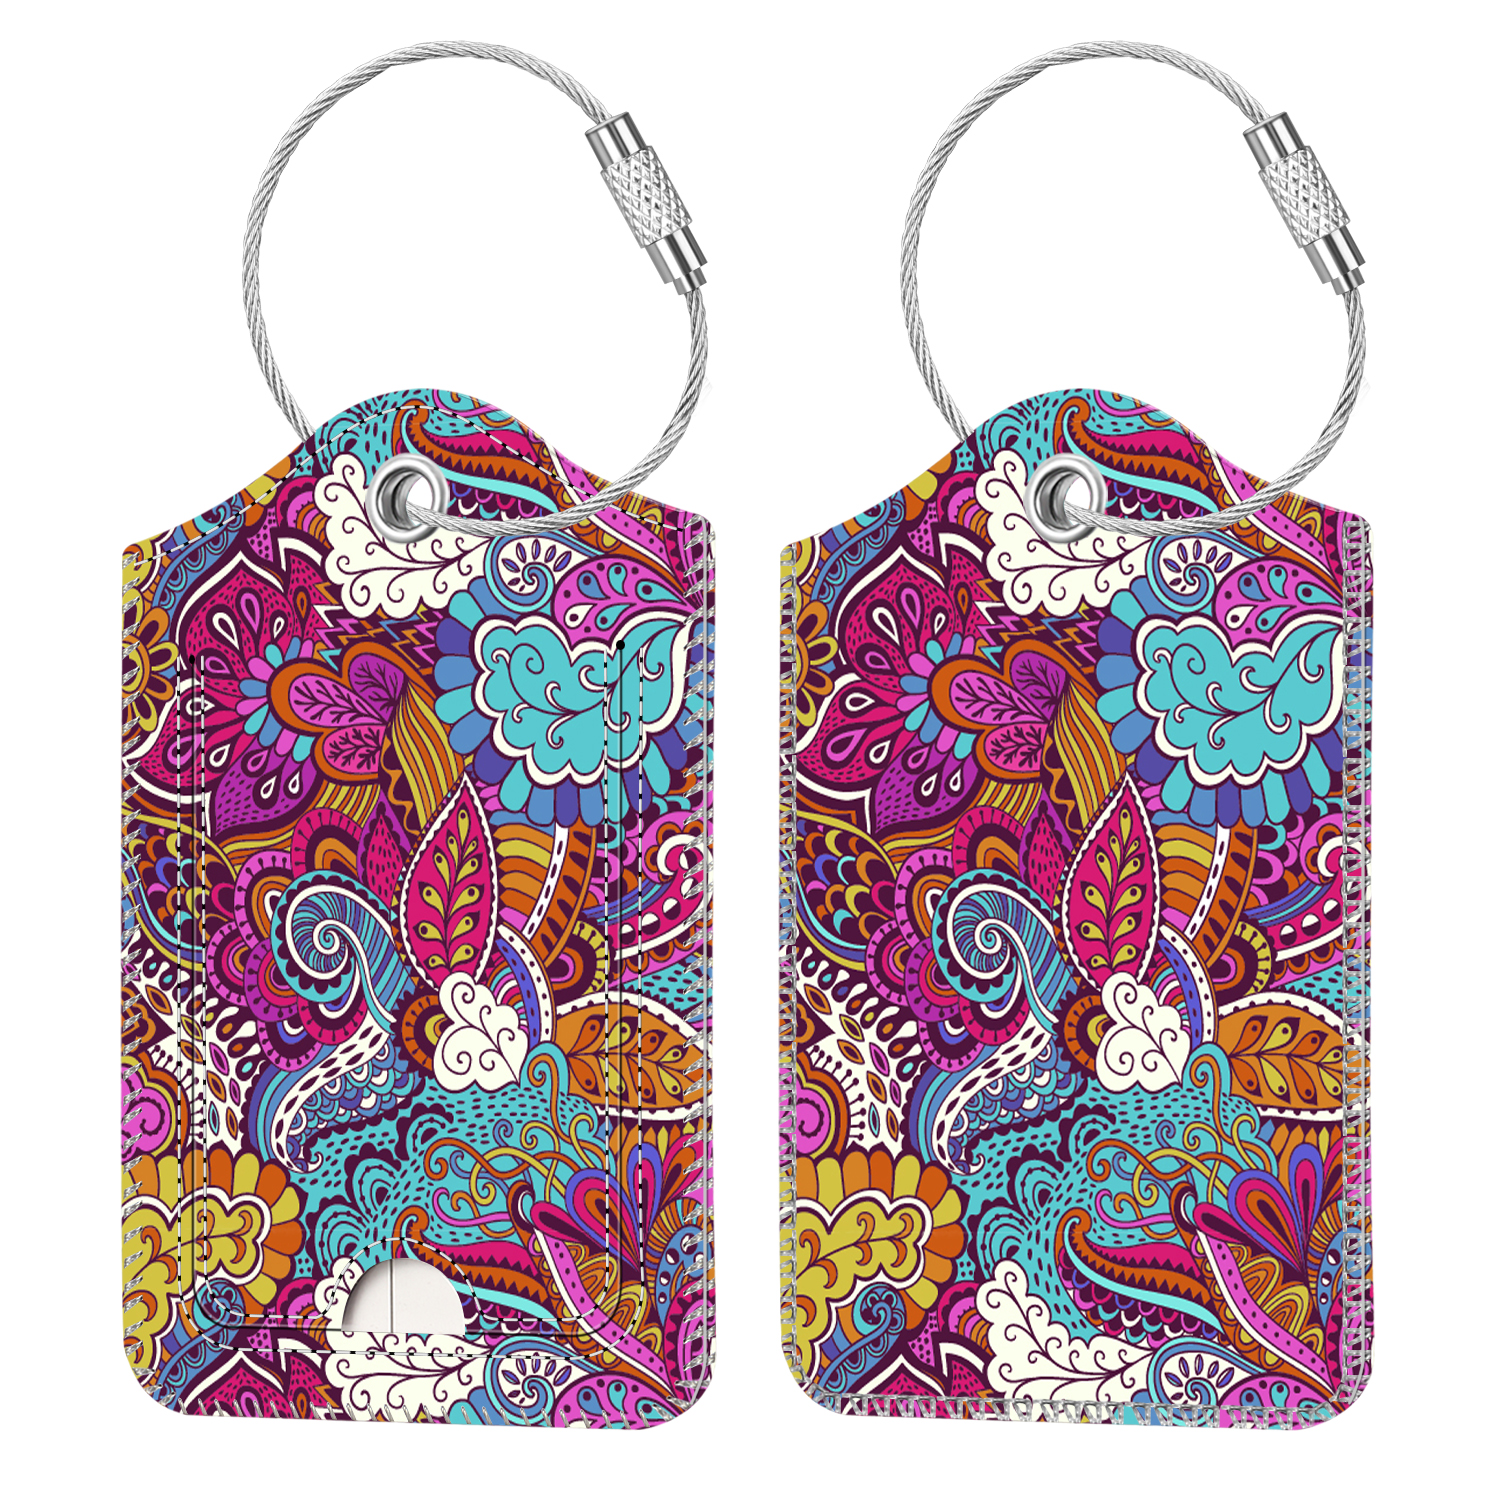 Tie Dye Marble Luggage Tags With Full Back Privacy Cover W//Steel Loops